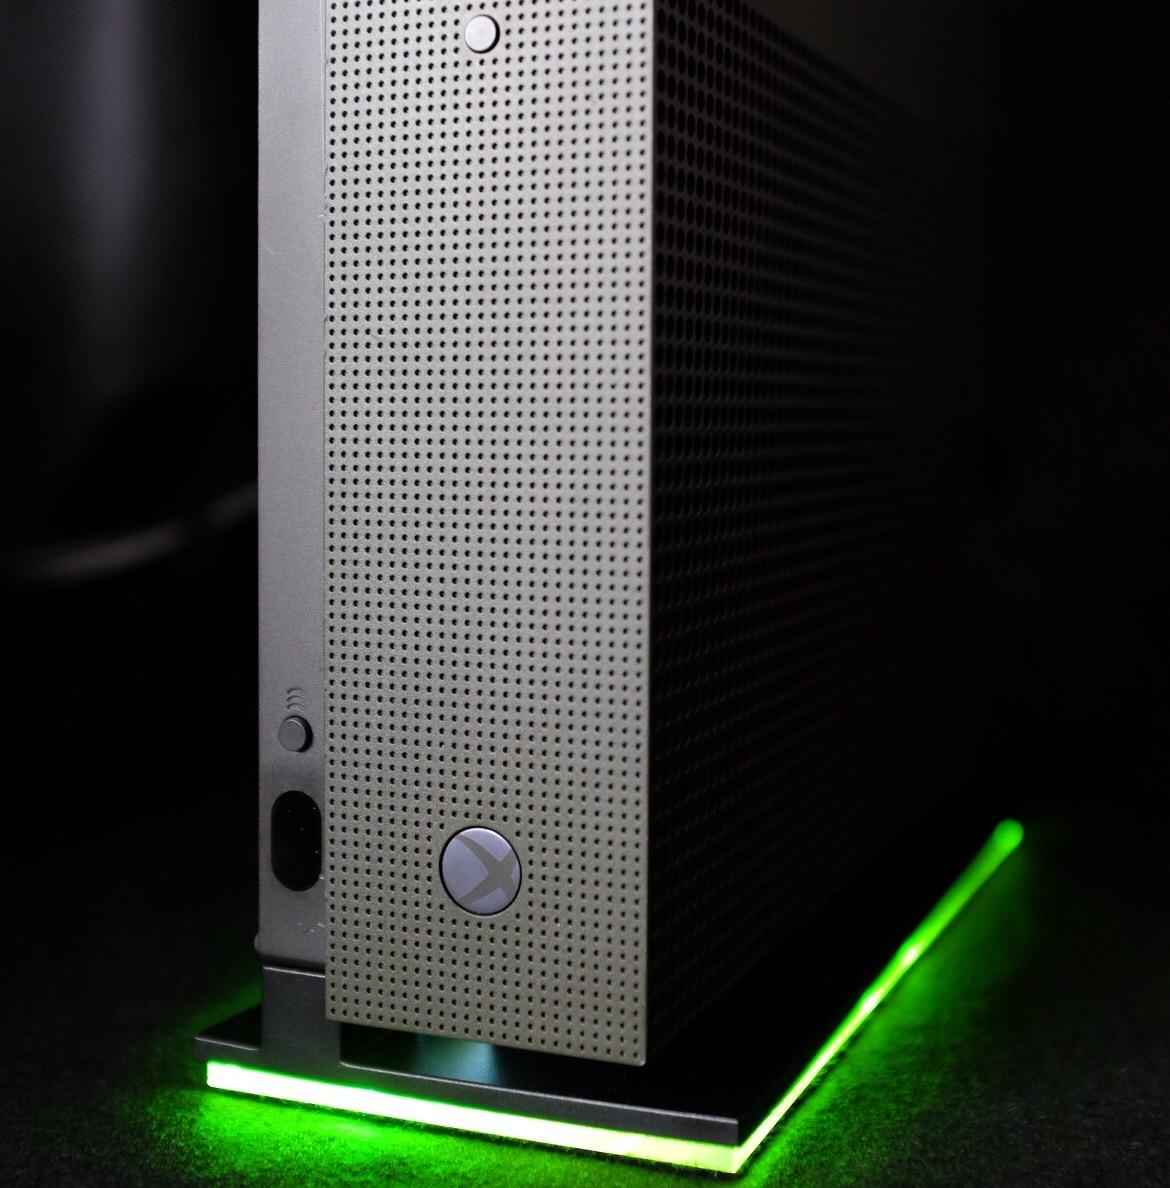 This Guy Made a Light Stand For the Xbox One S, And It Looks Awesome